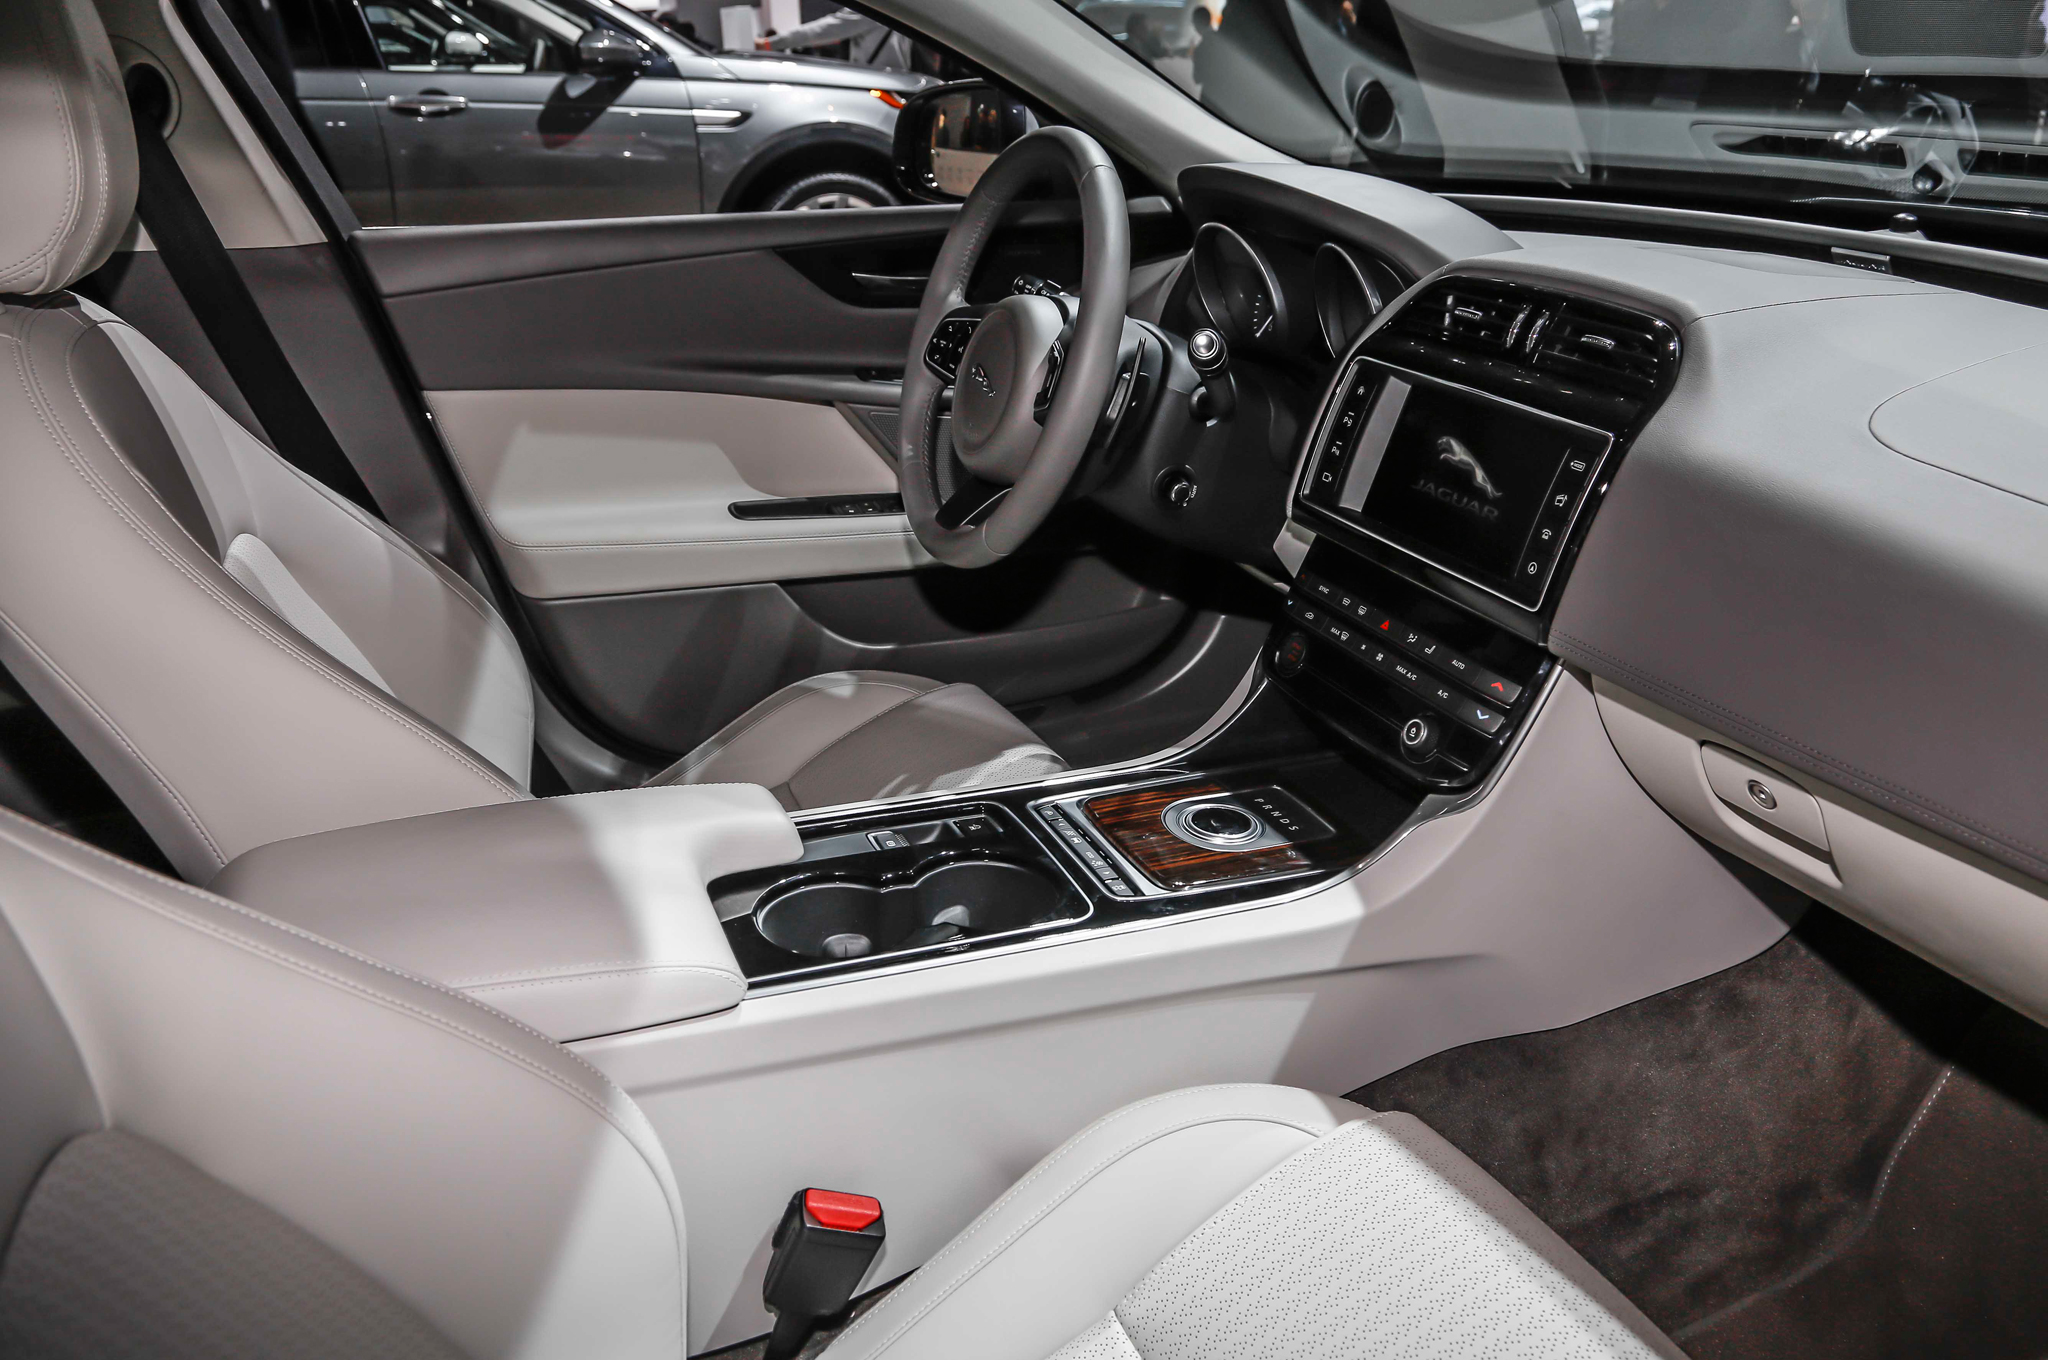 2016 Jaguar Xe Interior Cockpit Preview (Photo 8 of 12)